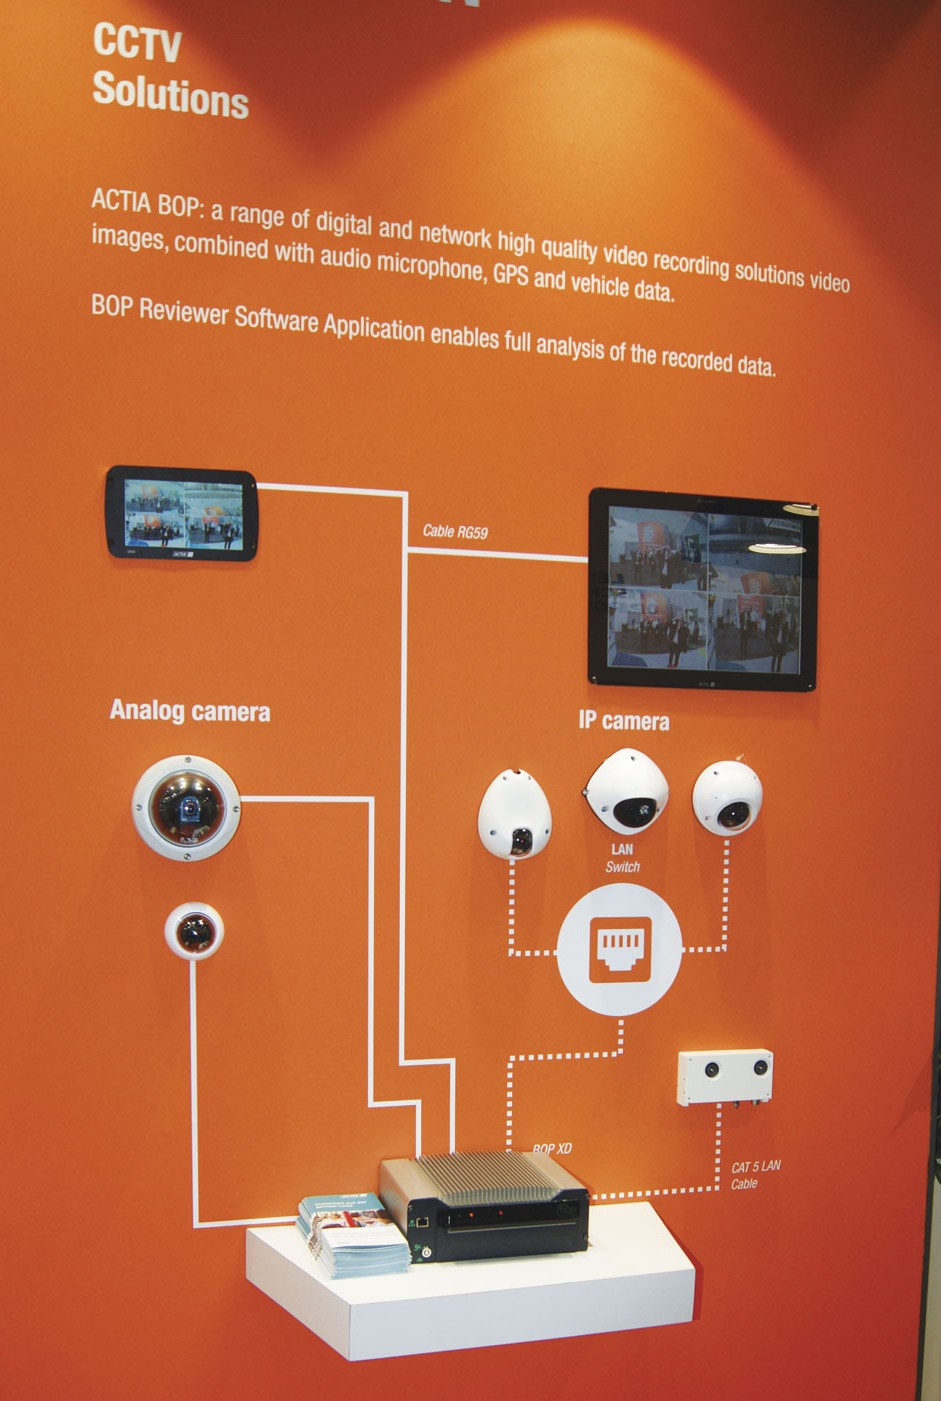 A display of Actia's CCTV systems